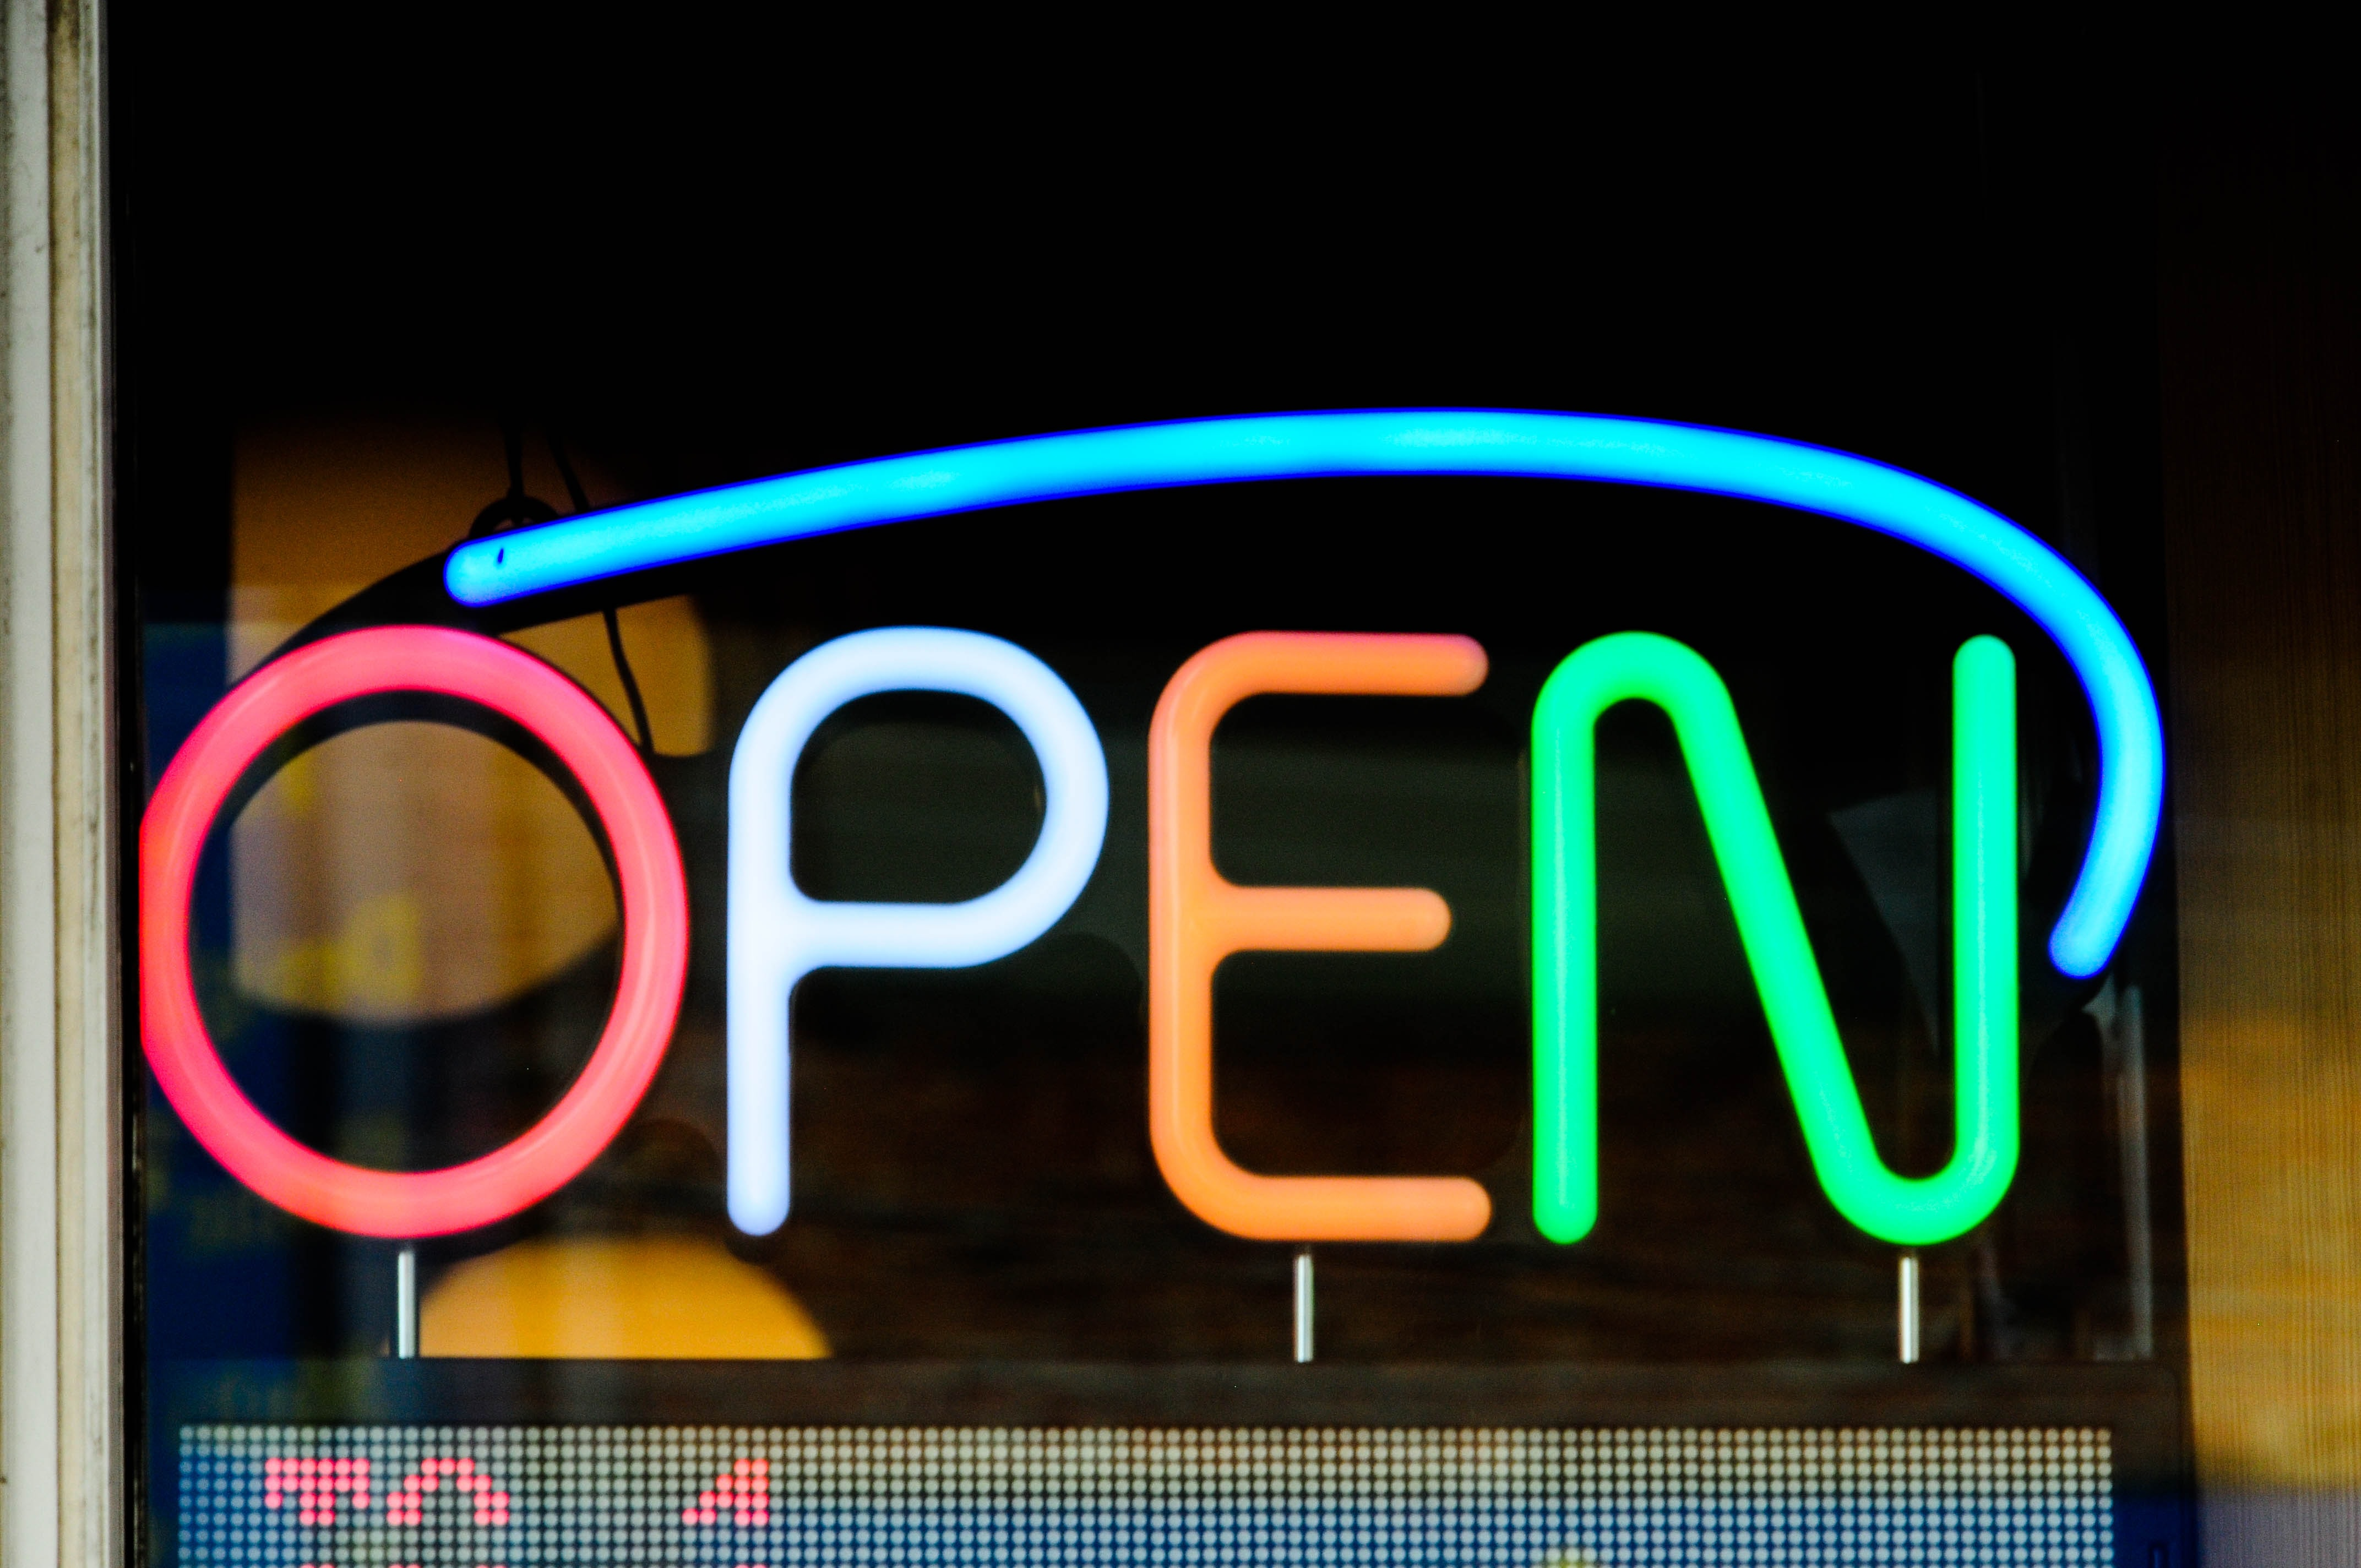 An image of an open sign in rainbow colors